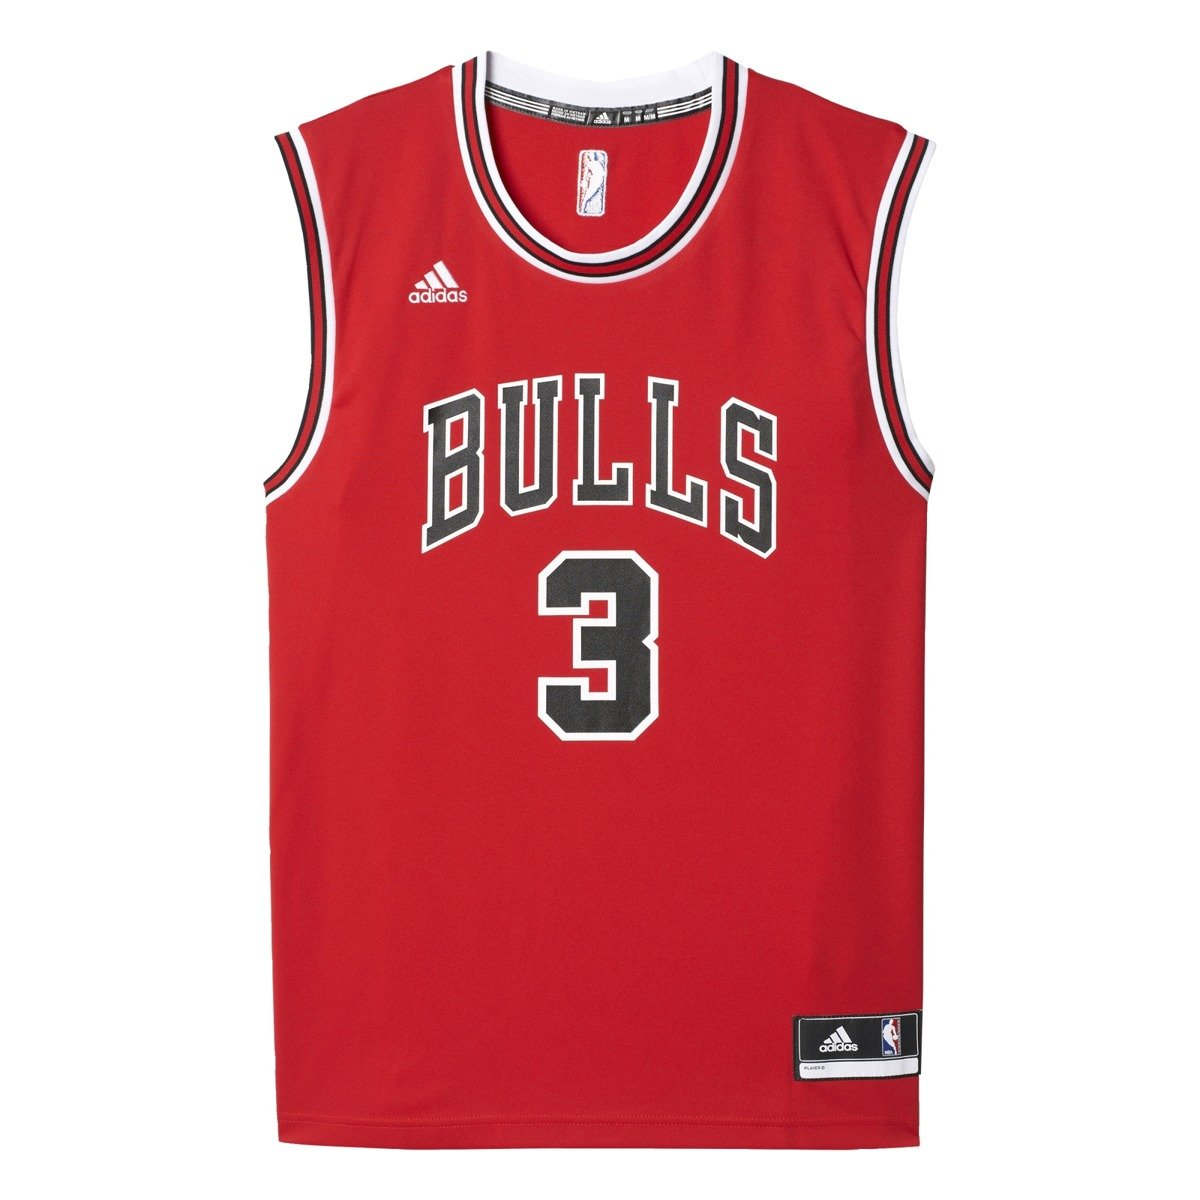 adidas nba chicago bulls replica 3 wade t shirt cc2552 basketball clothing casual wear. Black Bedroom Furniture Sets. Home Design Ideas